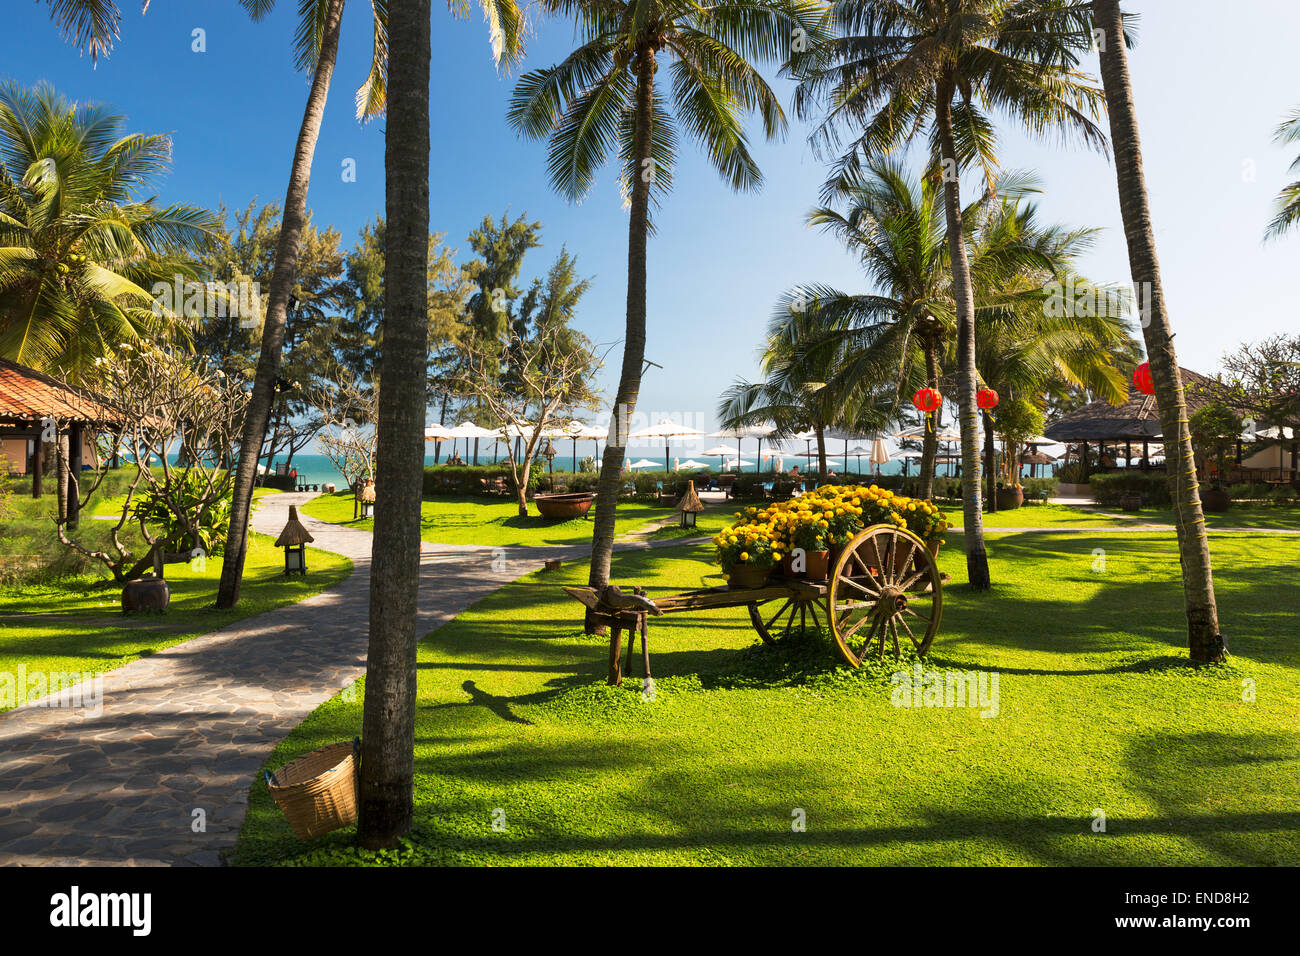 PHAN THIET, VIETNAM - FEBRUARY 07, 2014: Seaside resort on the beaches of Phan Thiet - an upcoming touristic area - Stock Image